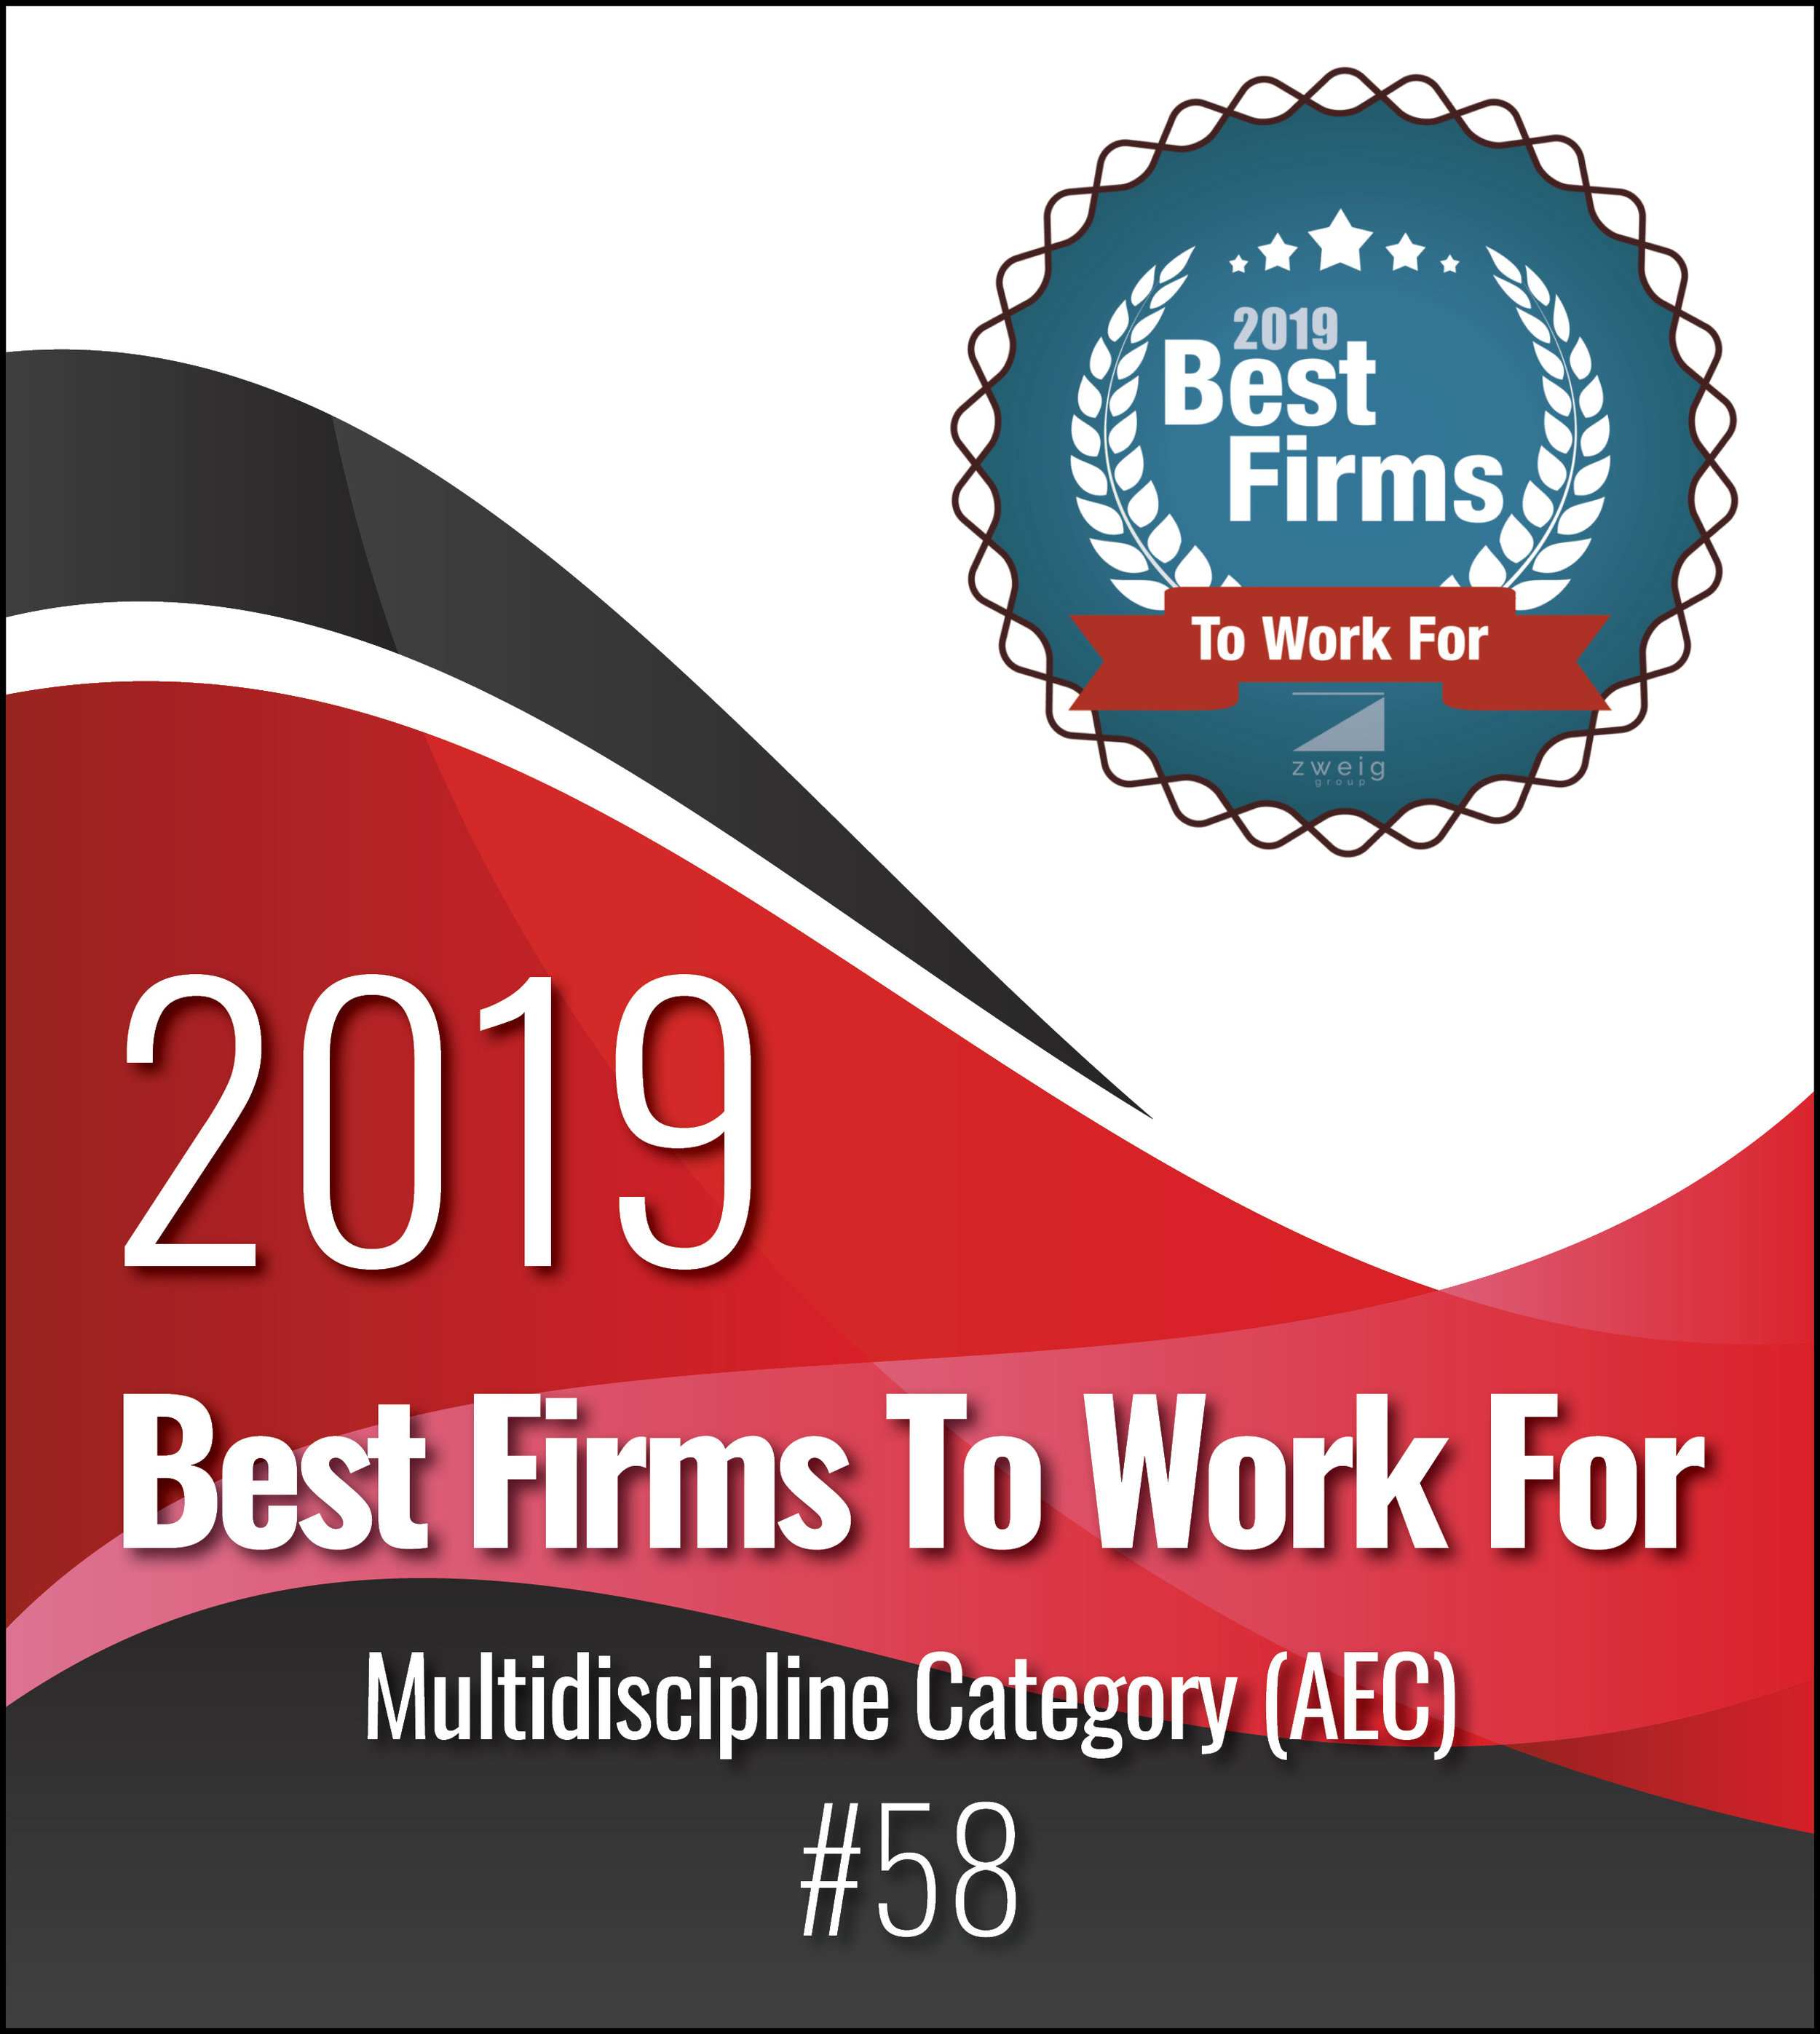 2019 Best Firms To Work For_MULTIDISCIPLINE.jpg